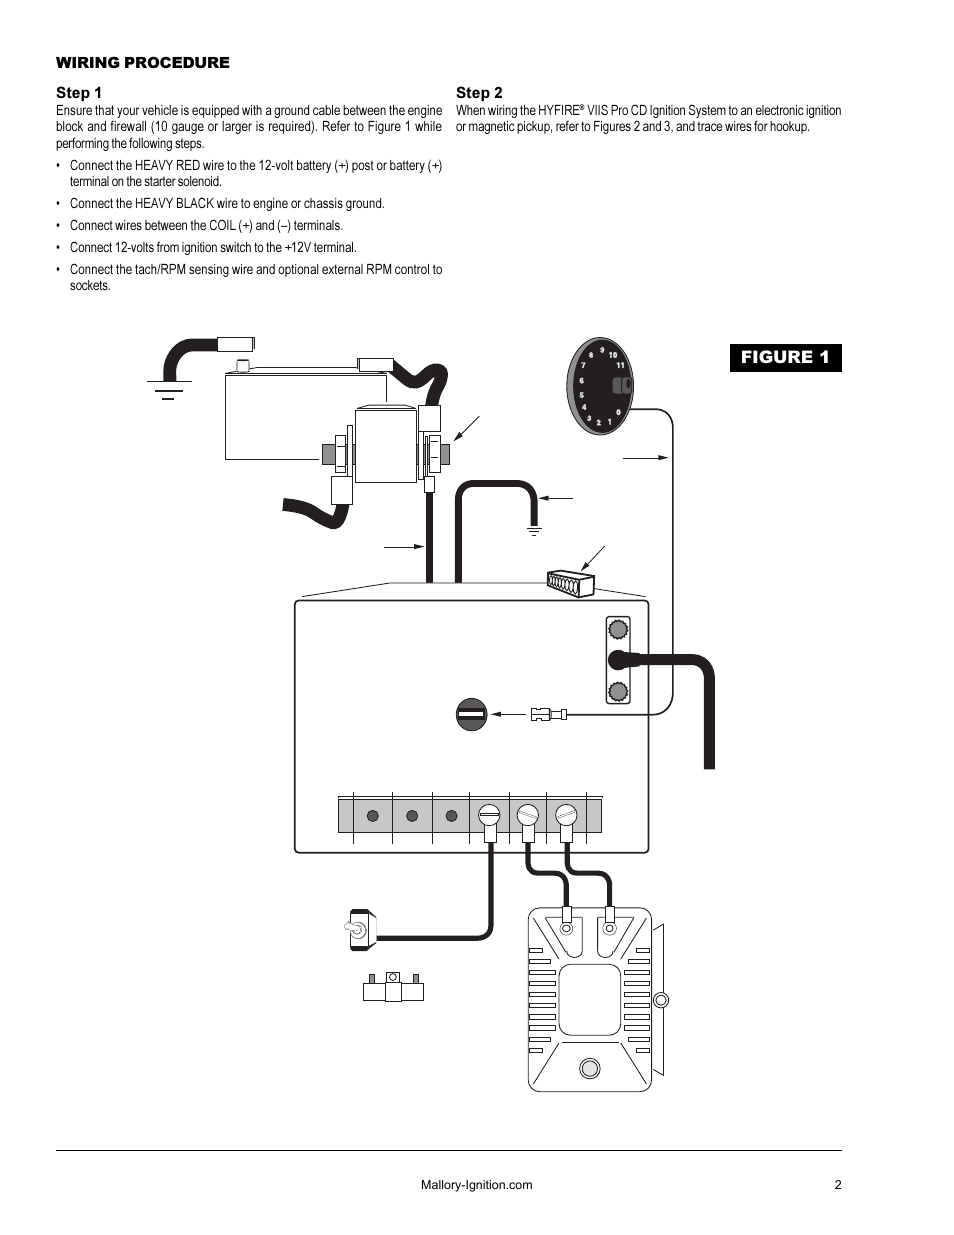 Mallory Hyfire Ignition Wiring Diagram - Free Download Wiring Diagram